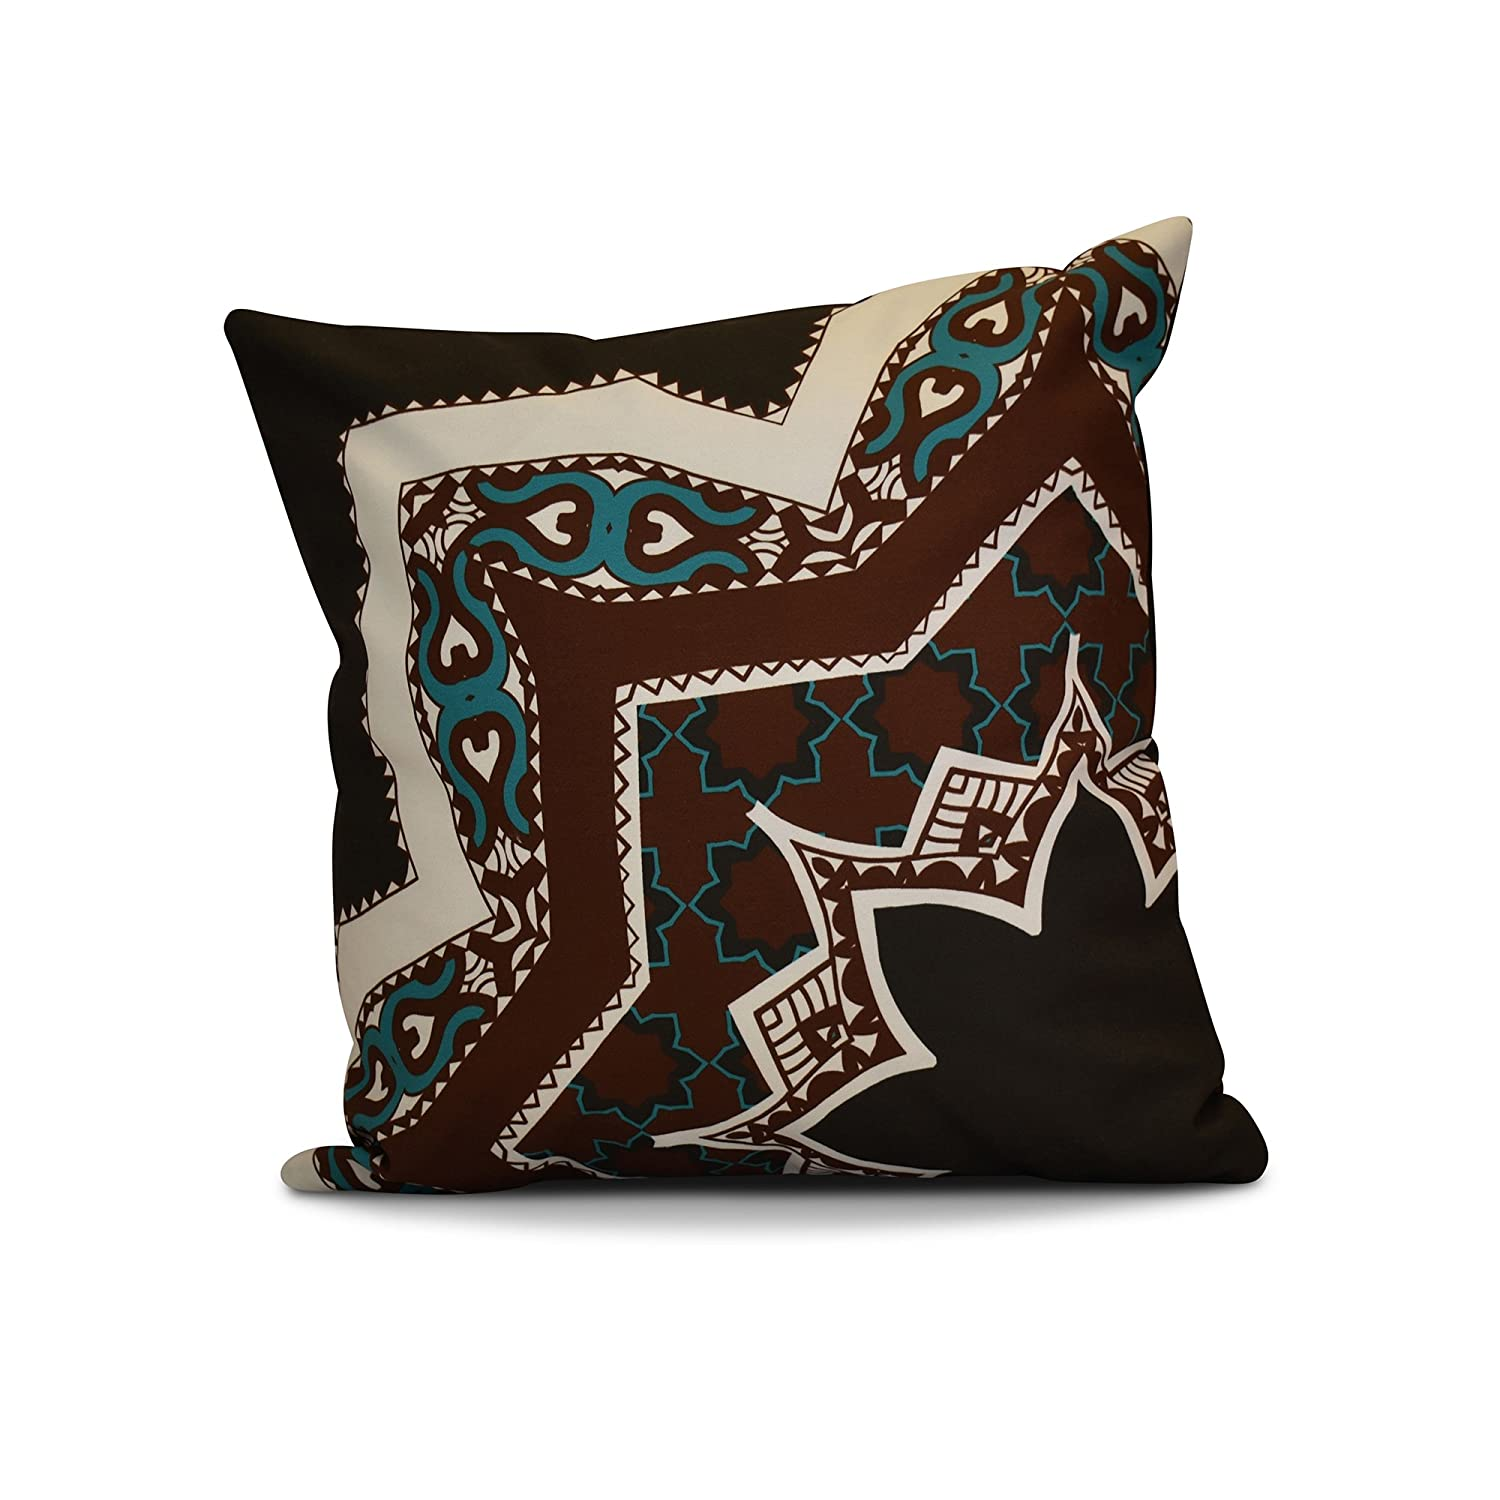 x 20 in Sofa Throw Pillow 12 in Designart CU13934-12-20 Straight Pathway in Thick Modern Forest Lumbar Cushion Cover for Living Room in